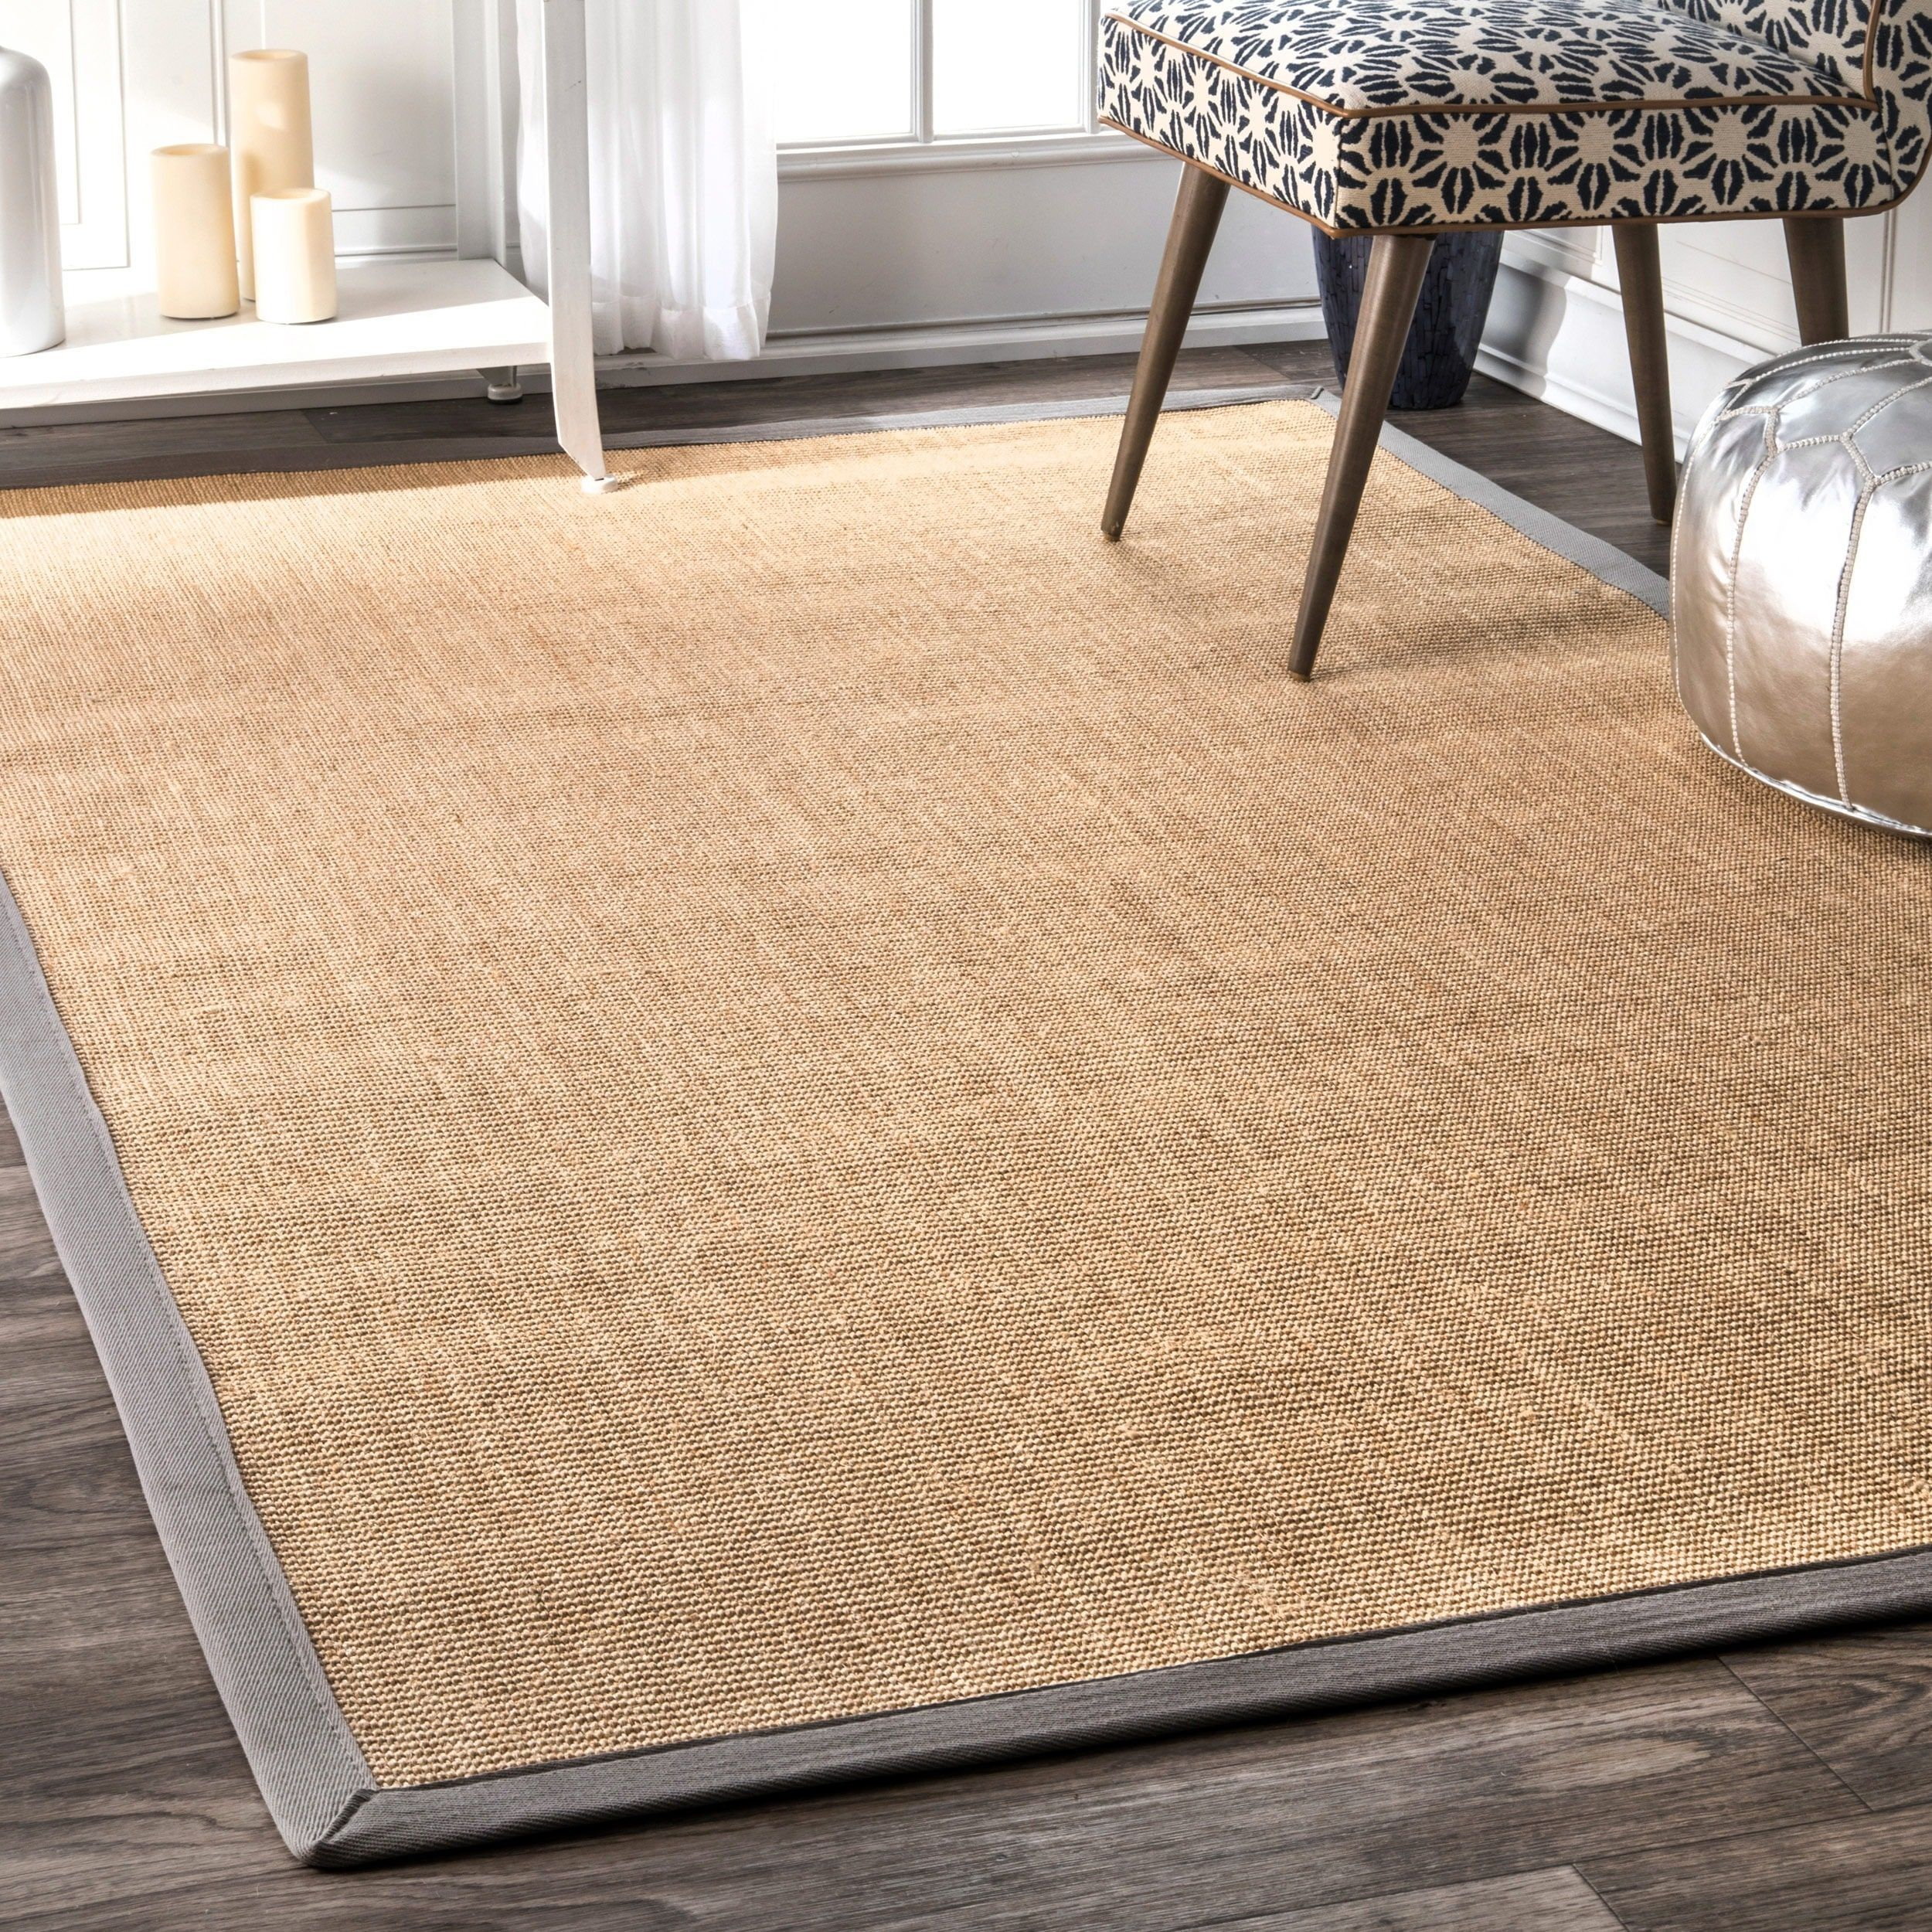 sisal garage lowes ing homegoods r chevron wa outdoor jute discounted x rug coral rummy menards area rugs